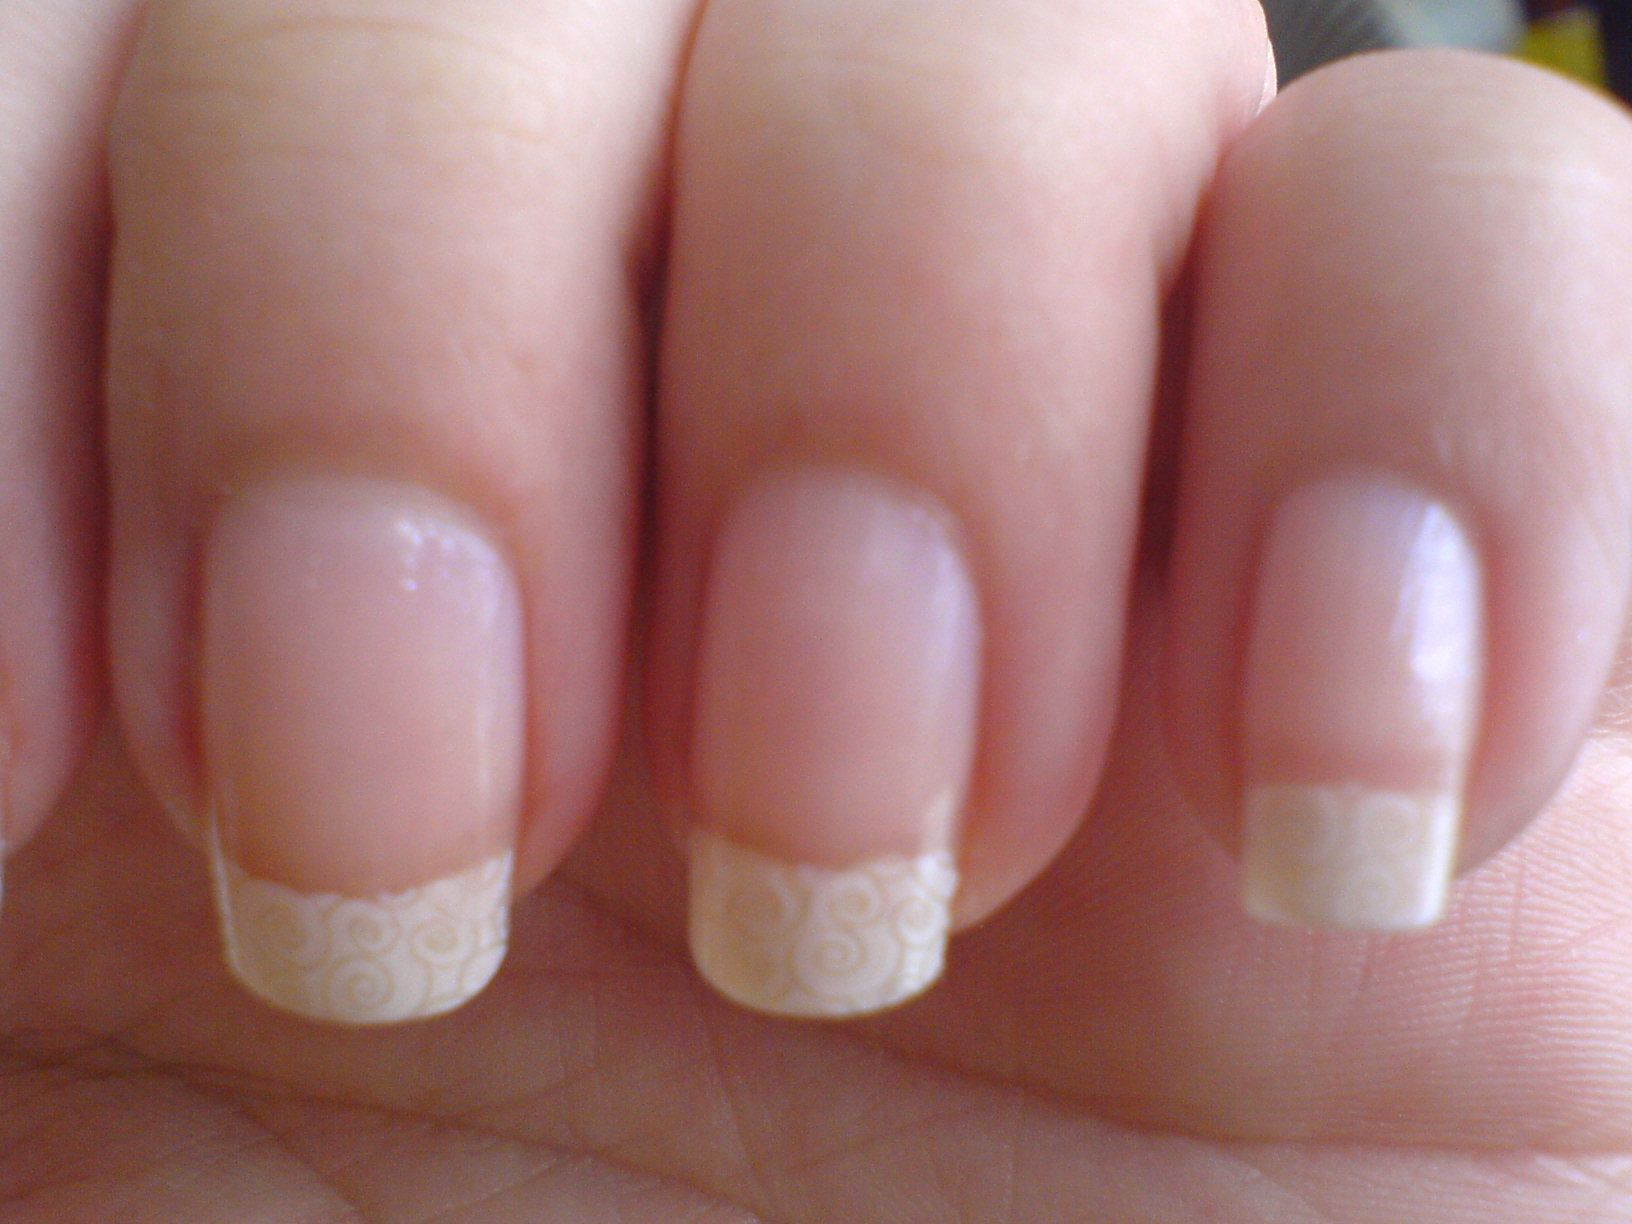 French manicure, my favorite look! Natural, clean, & classy.